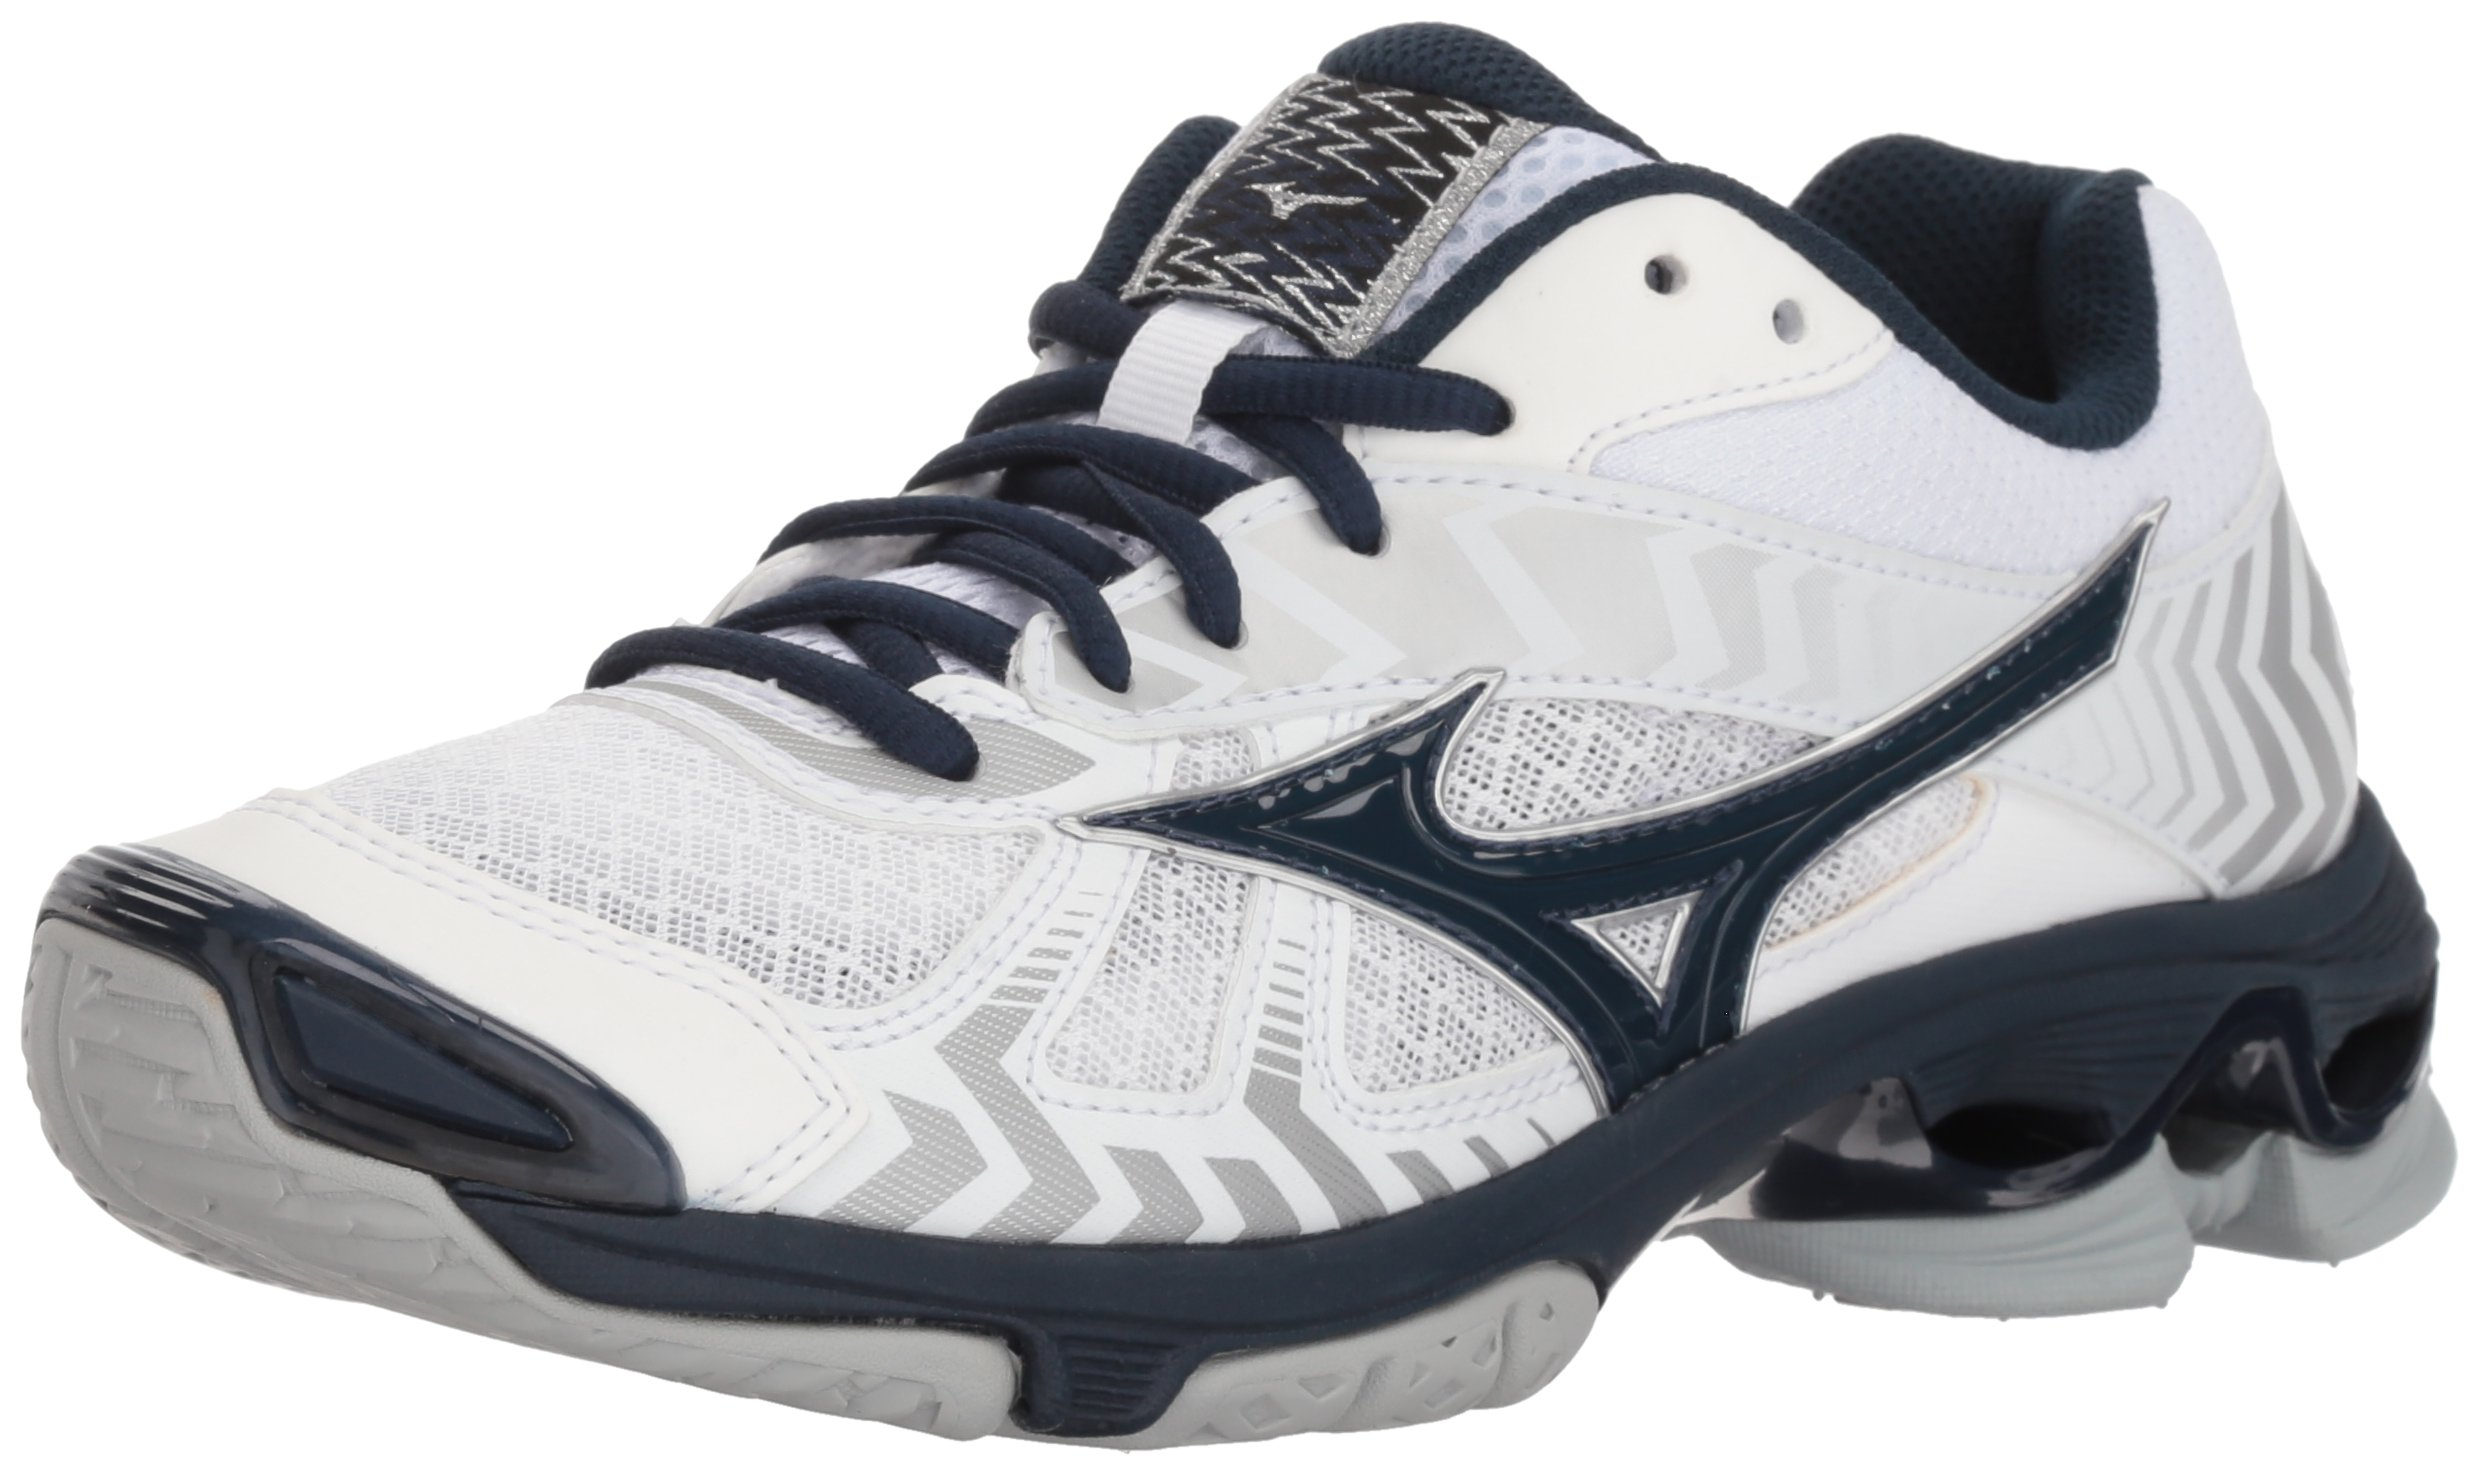 Mizuno Wave Bolt 7 Volleyball Shoes, White/Navy Women's 8 B US